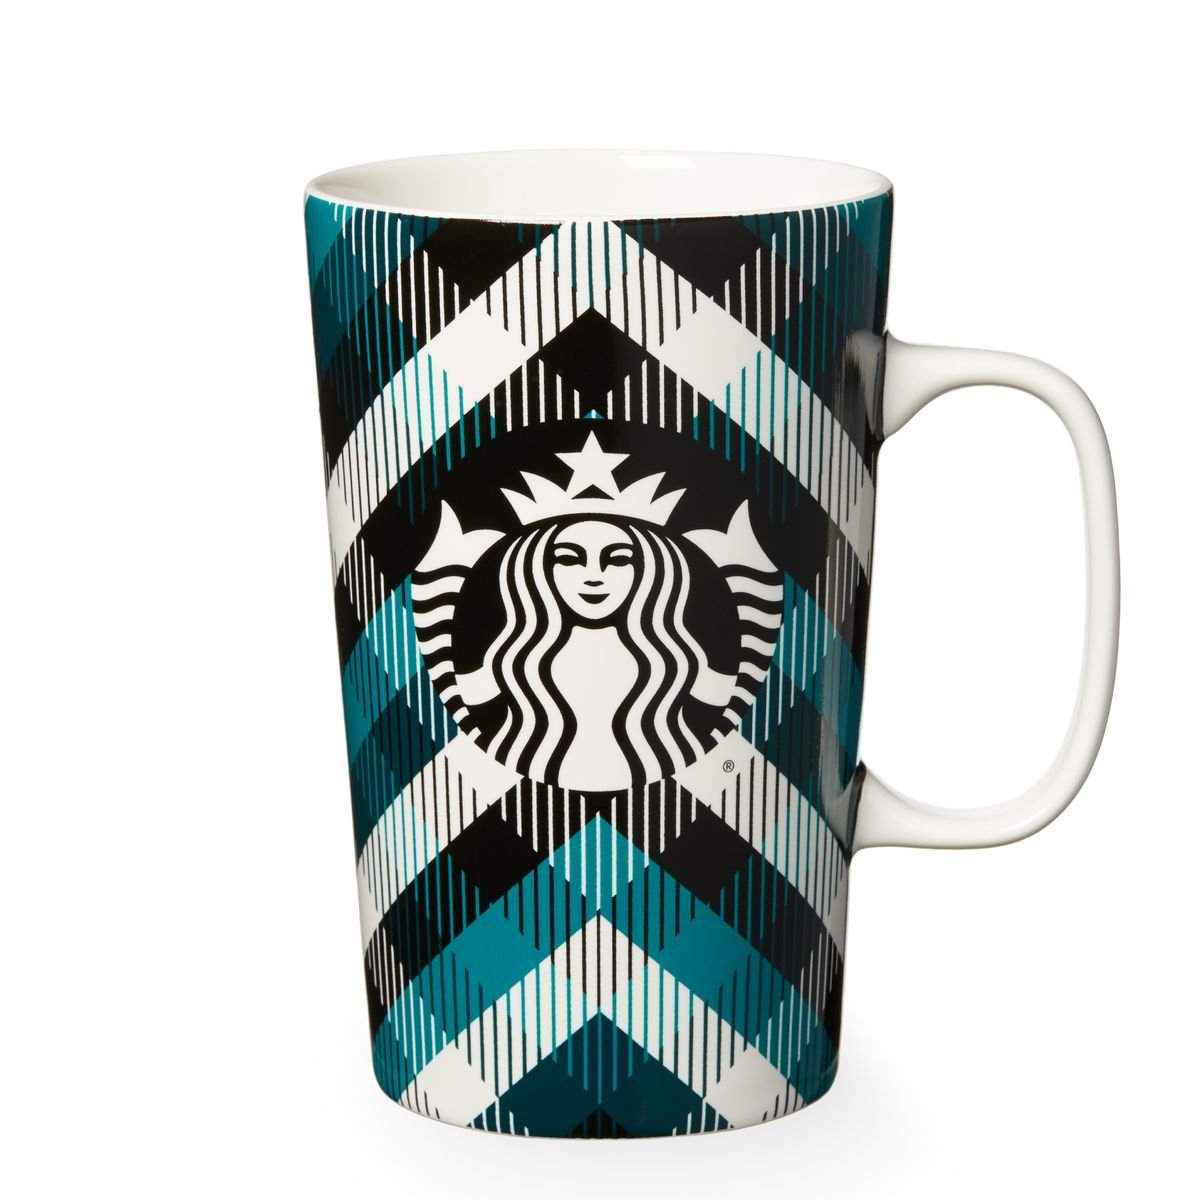 Starbucks Blue Plaid Mug, 16 Fl Oz